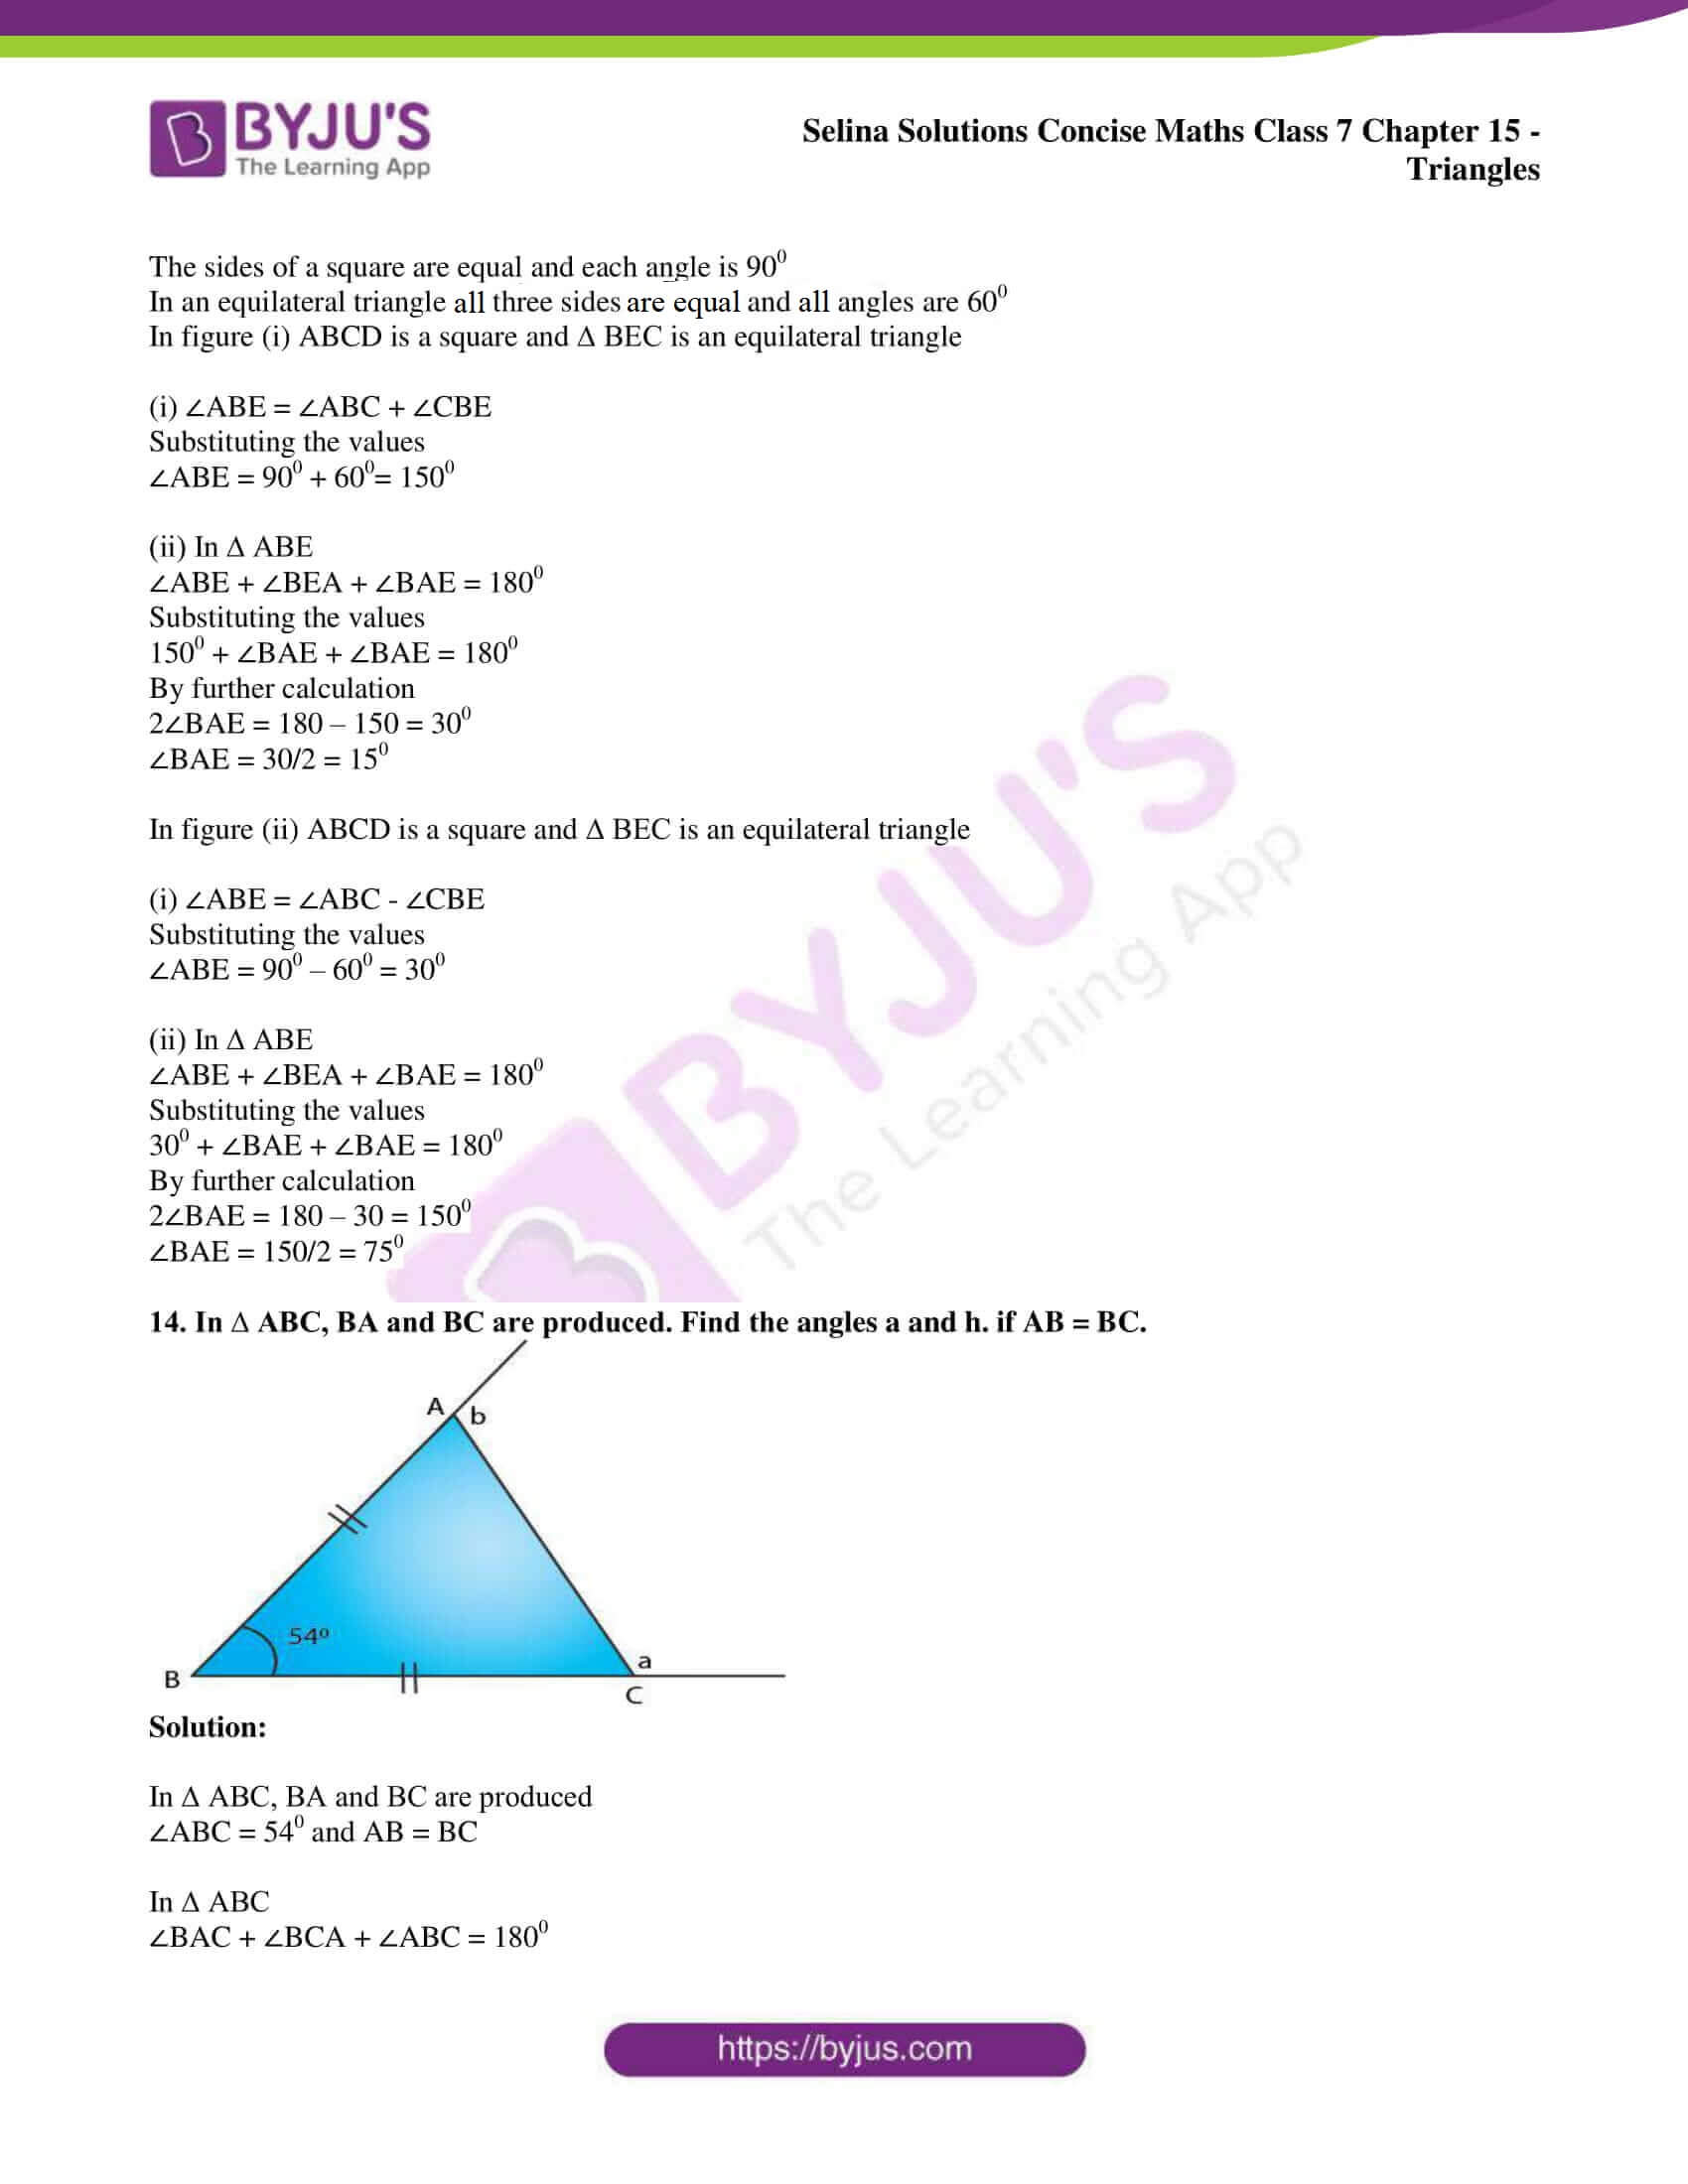 selina sol concise maths class 7 chapter 15 ex b 12